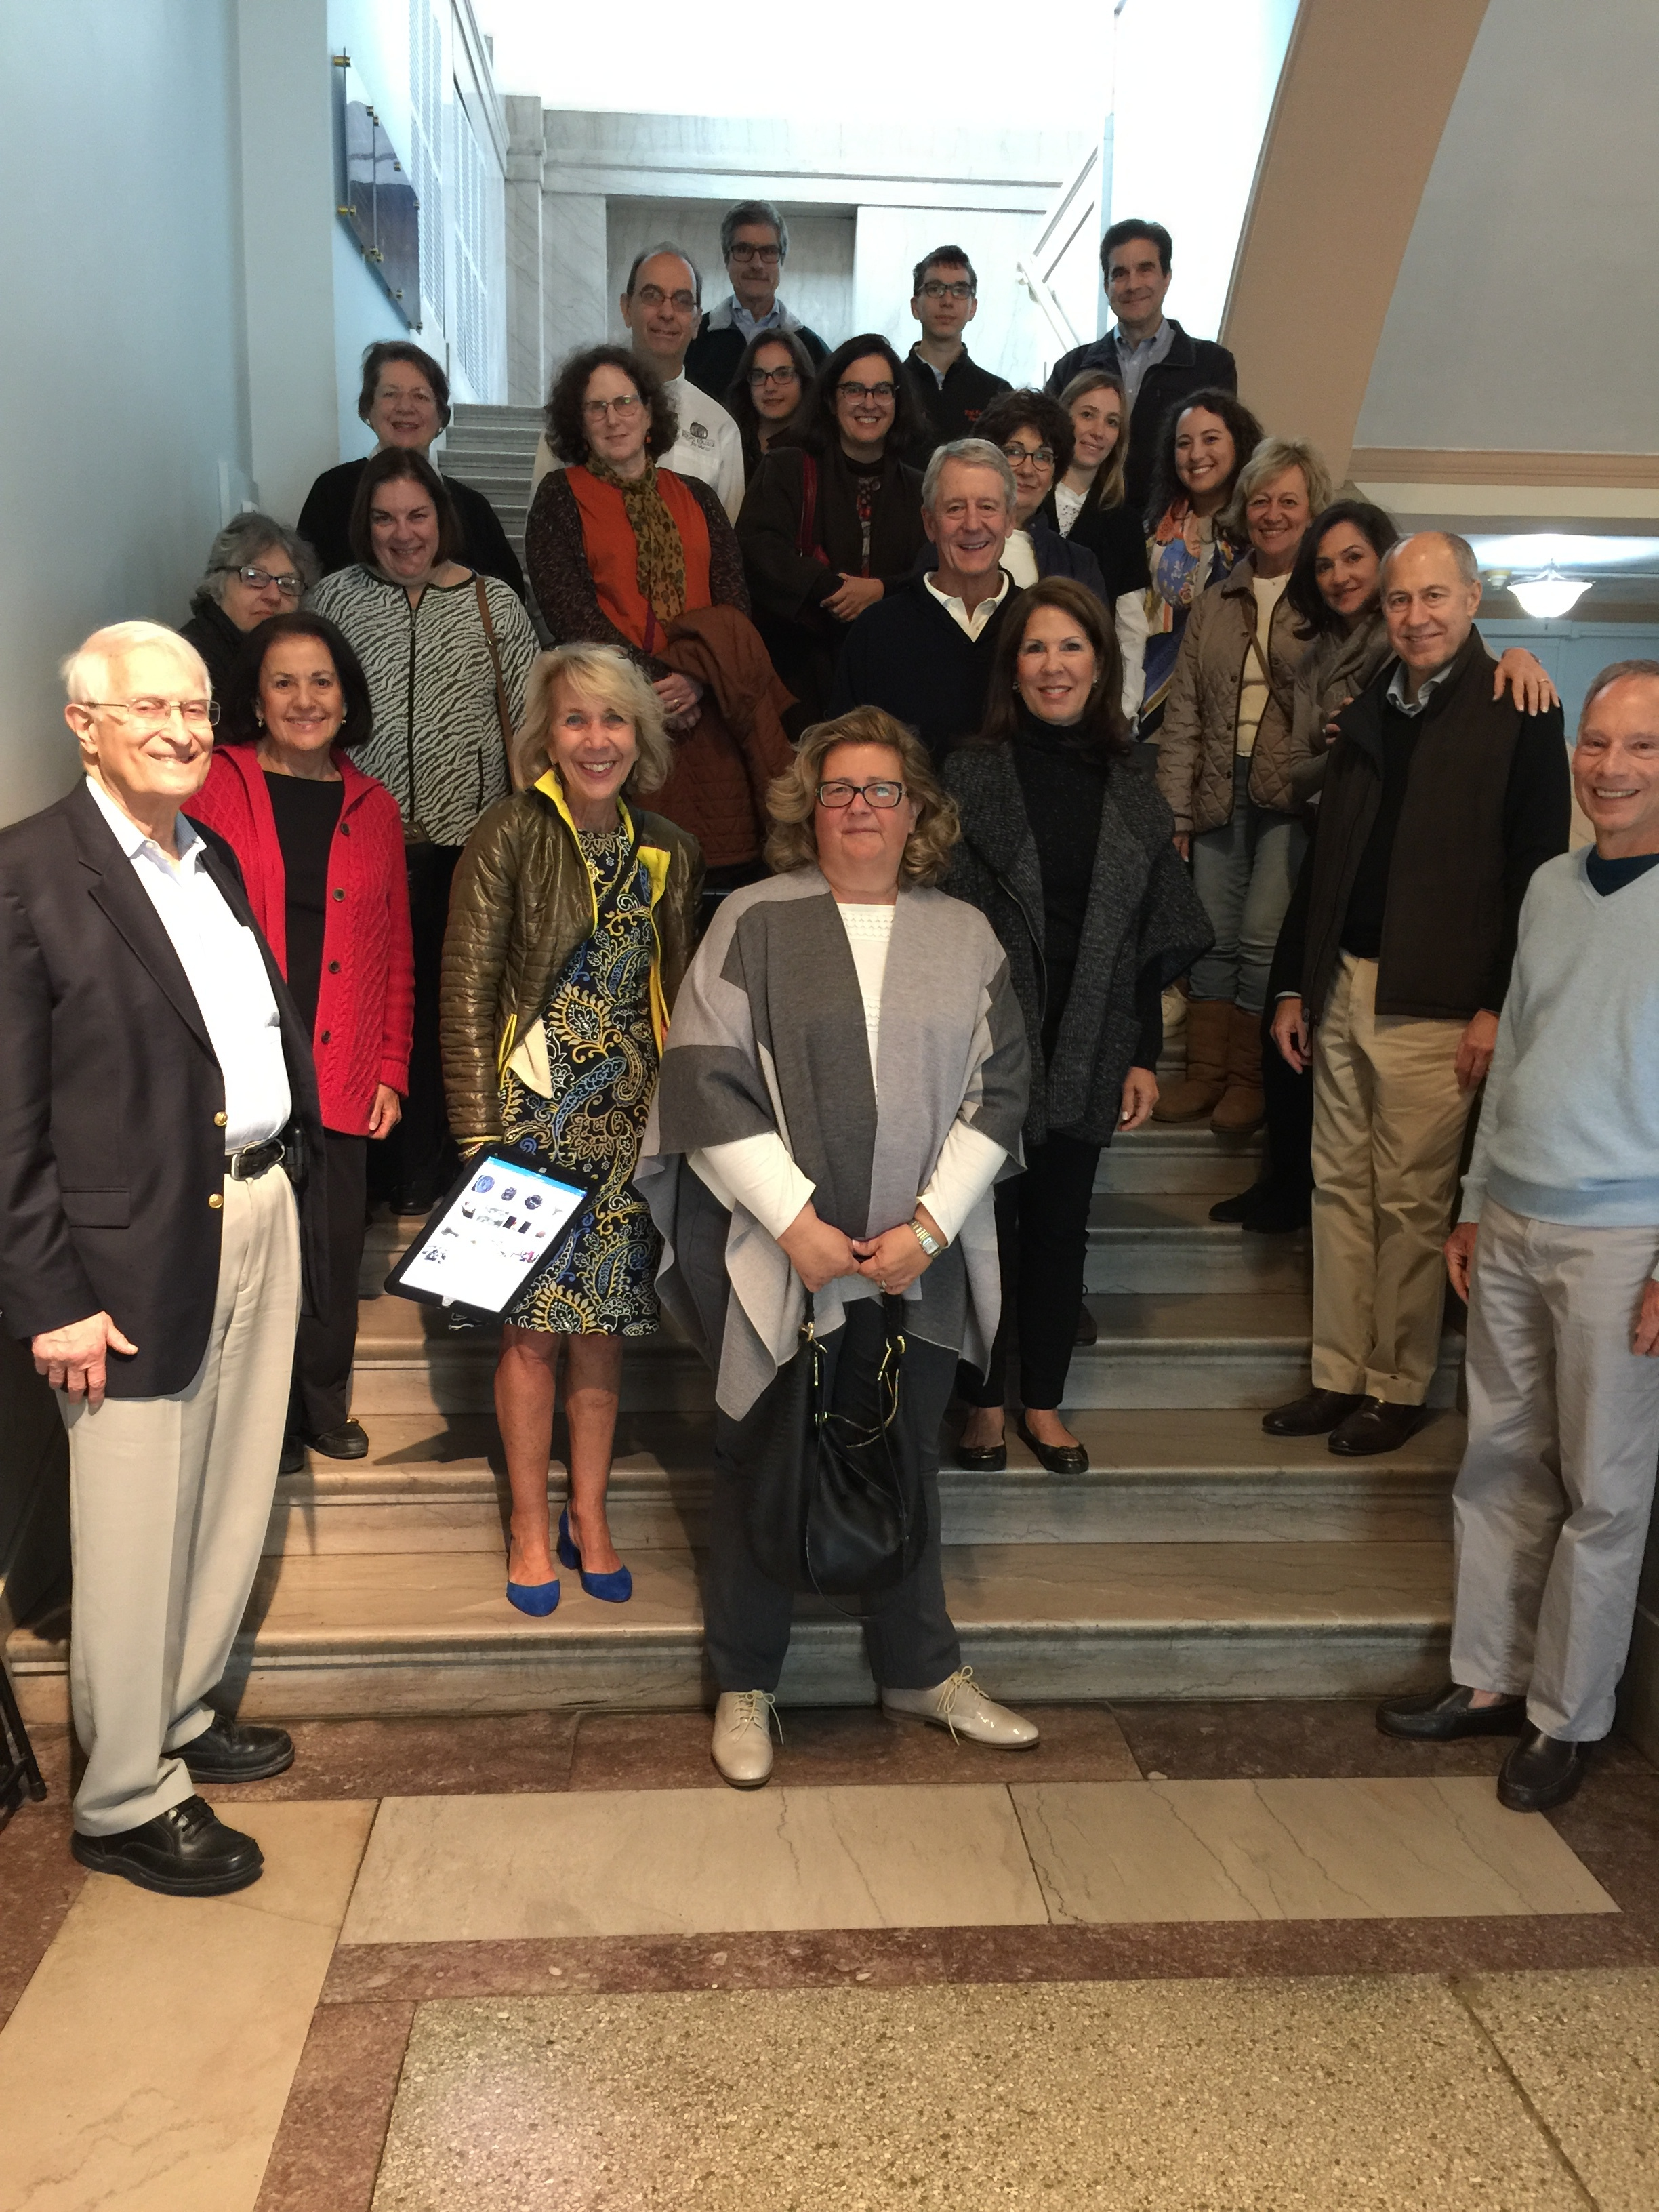 """HUC members enjoying a tour of the Penn Museum of Archaeology and Anthropology, guided by HUC member and classical archaeologist Anna Hadgis (bottom left in the blue shoes!). The theme of the tour was """"Journey to the City: From Mesopotamia to Philadelphia"""" and explored the brand new Middle Eastern galleries in the museum."""